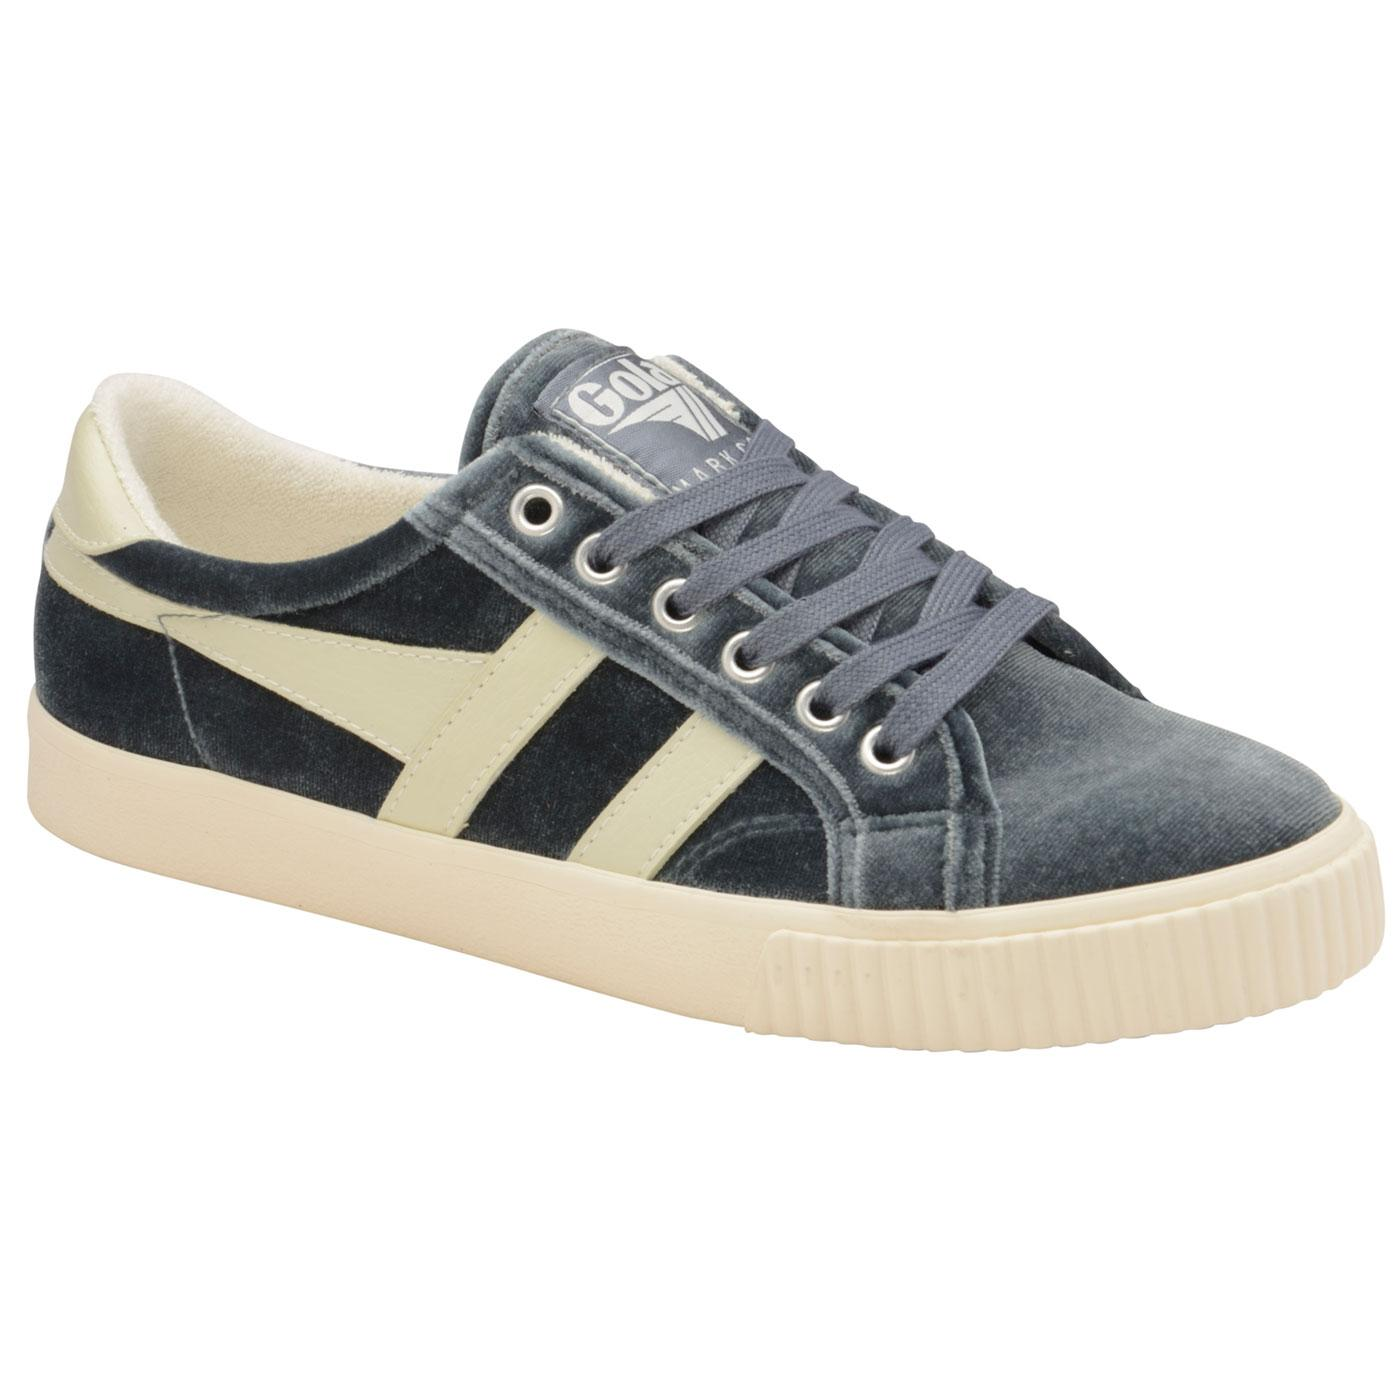 GOLA Mark Cox Womens Velvet Tennis Trainers (S/OW)